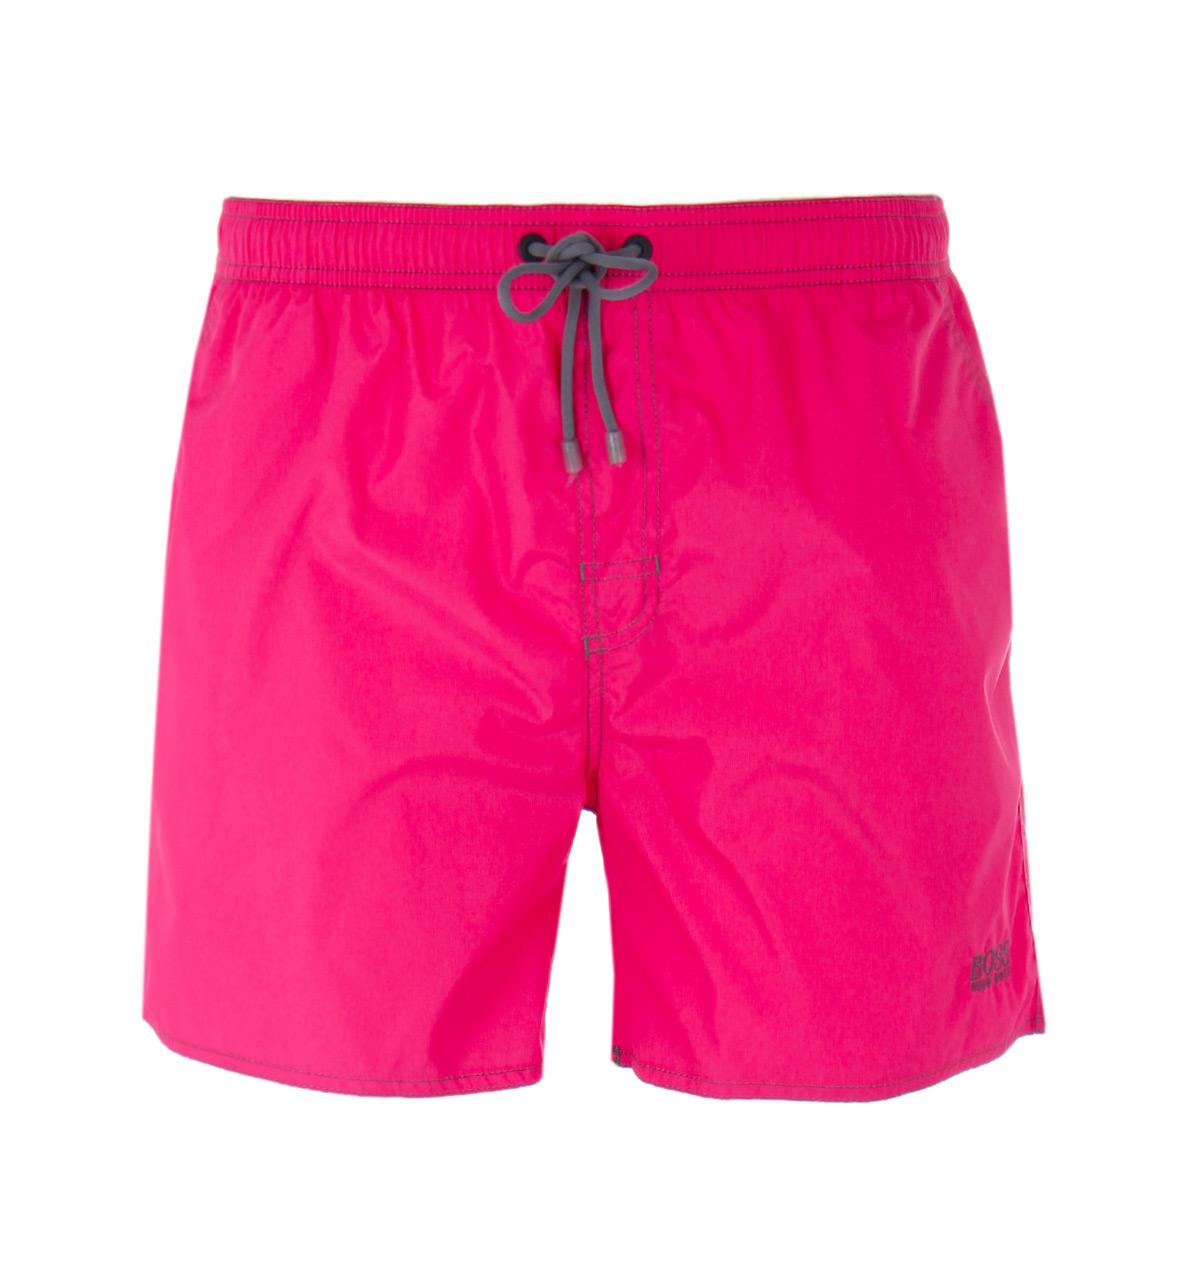 70a326251e BOSS Lobster Bright Pink Swim Shorts in Pink for Men - Lyst